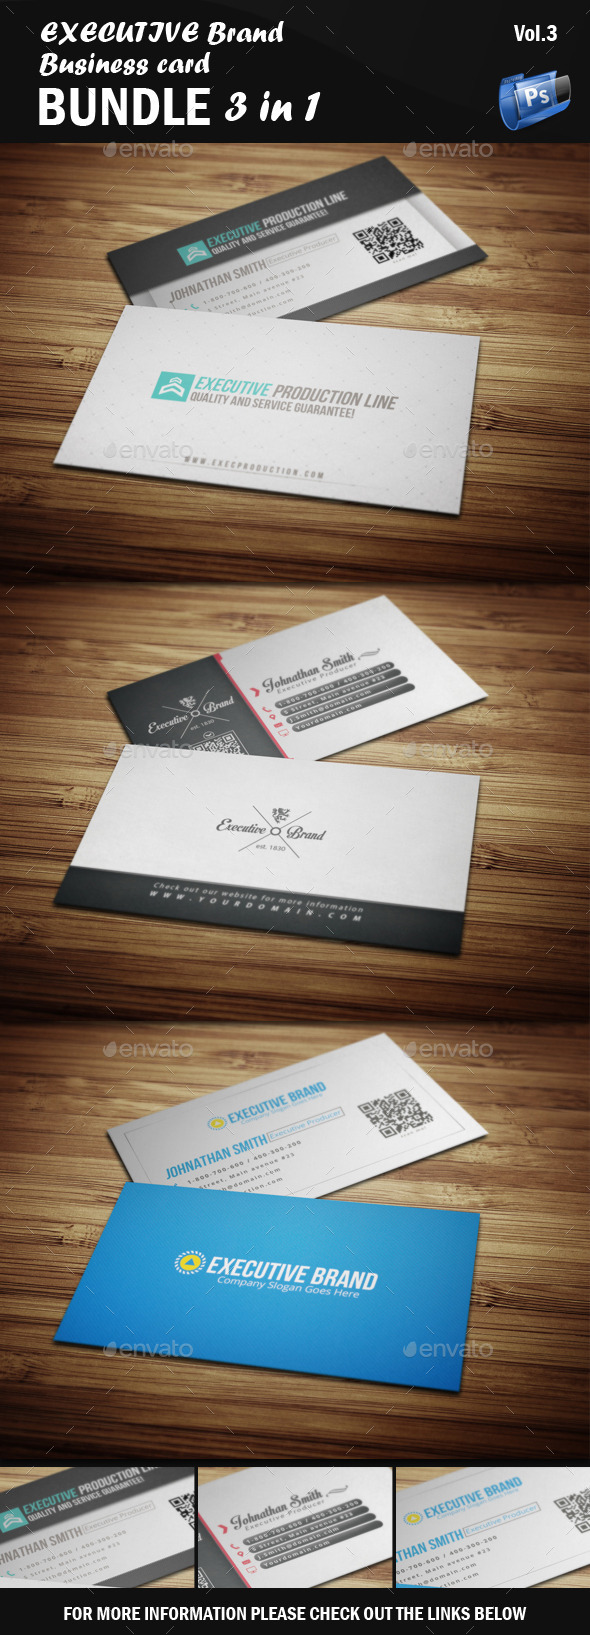 Executive Business Card - Bundle 3 in 1 [Vol.3] - Corporate Business Cards